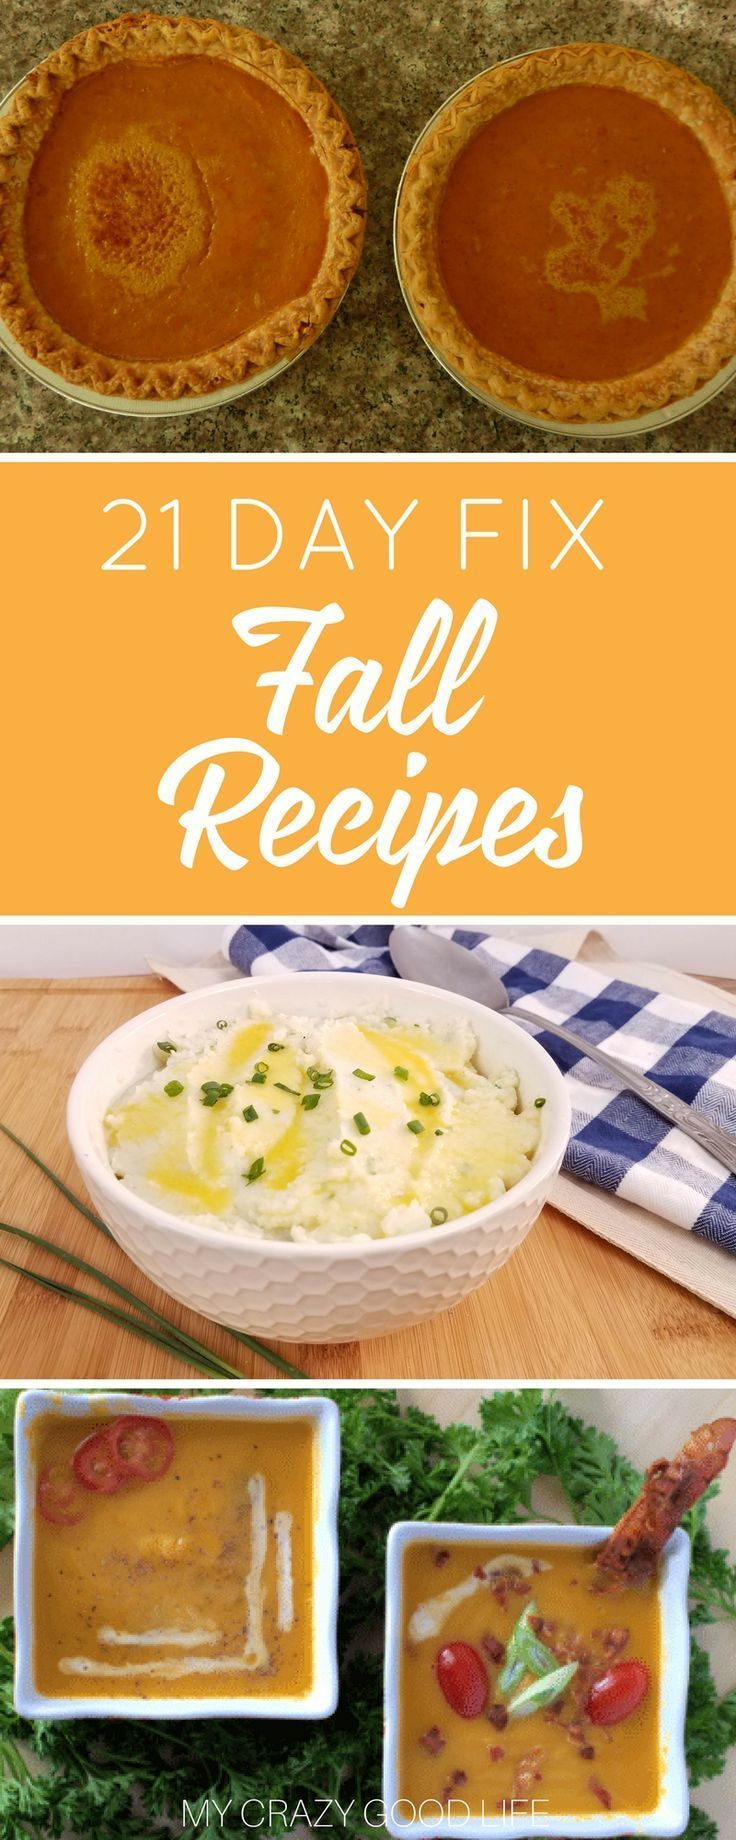 Just because the holidays are here doesn't mean you get a free pass to skip out on your healthy lifestyle! Instead, use this list to find some 21 Day Fix fall recipes that are healthy and fixed! via @bludlum